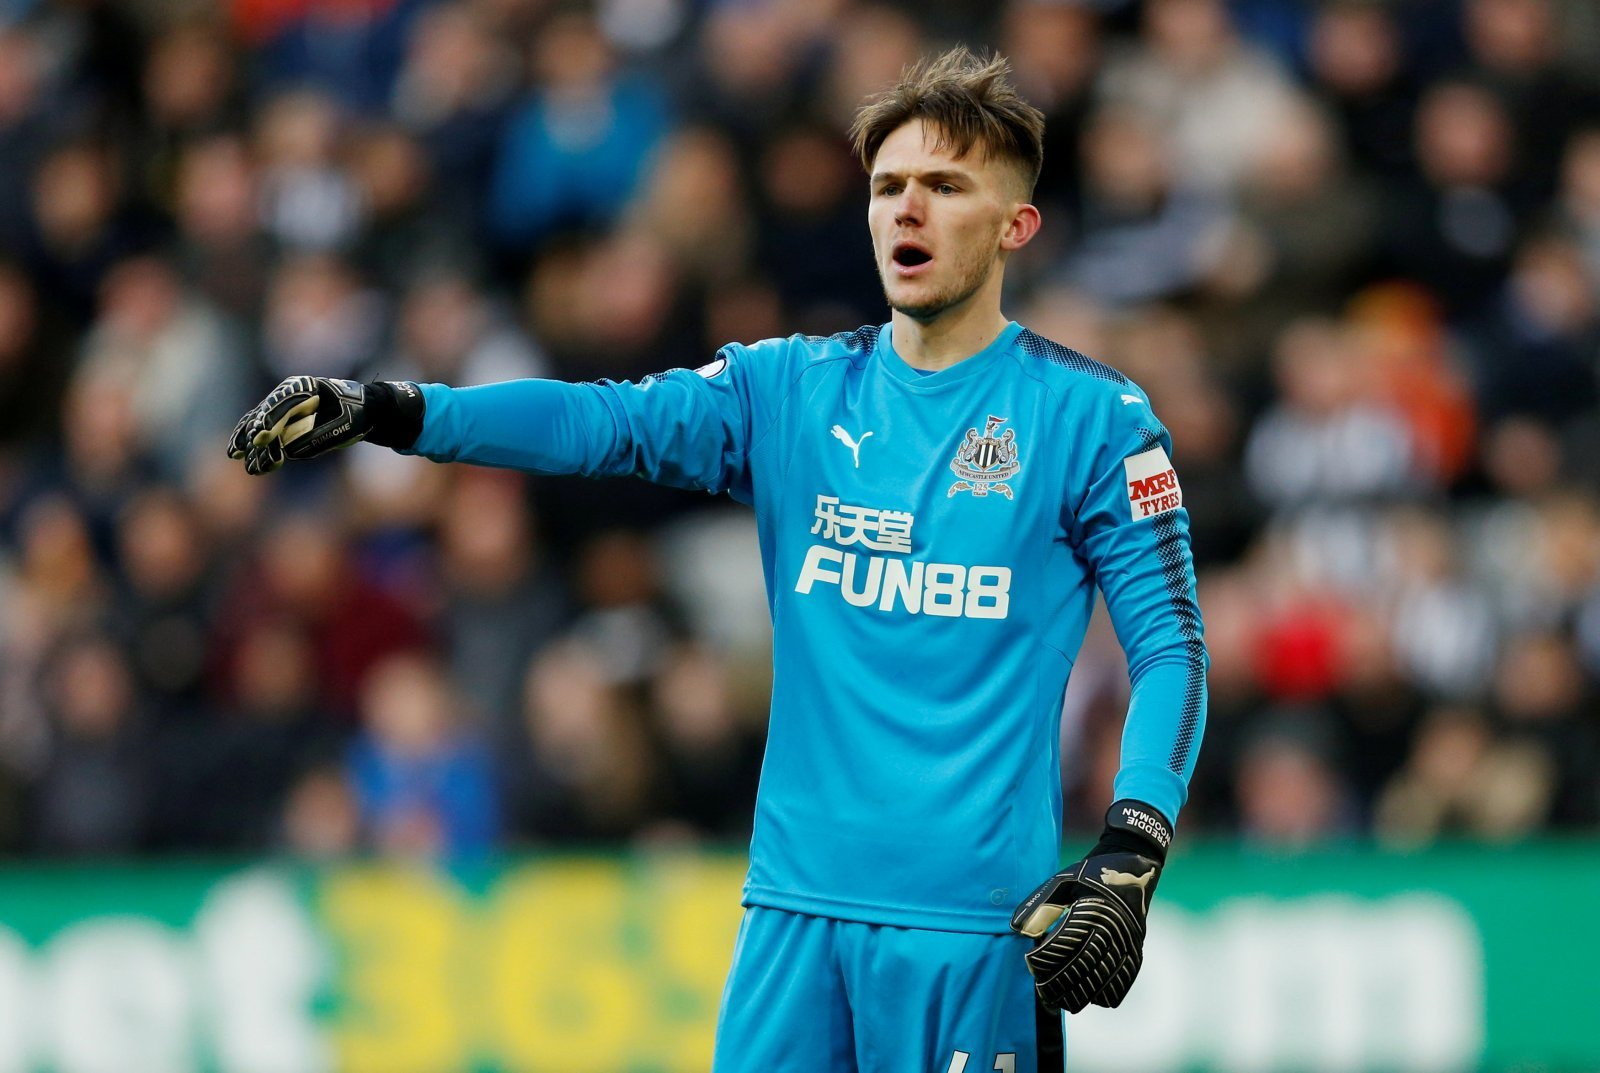 Newcastle United: Offers must be resisted for Freddie Woodman